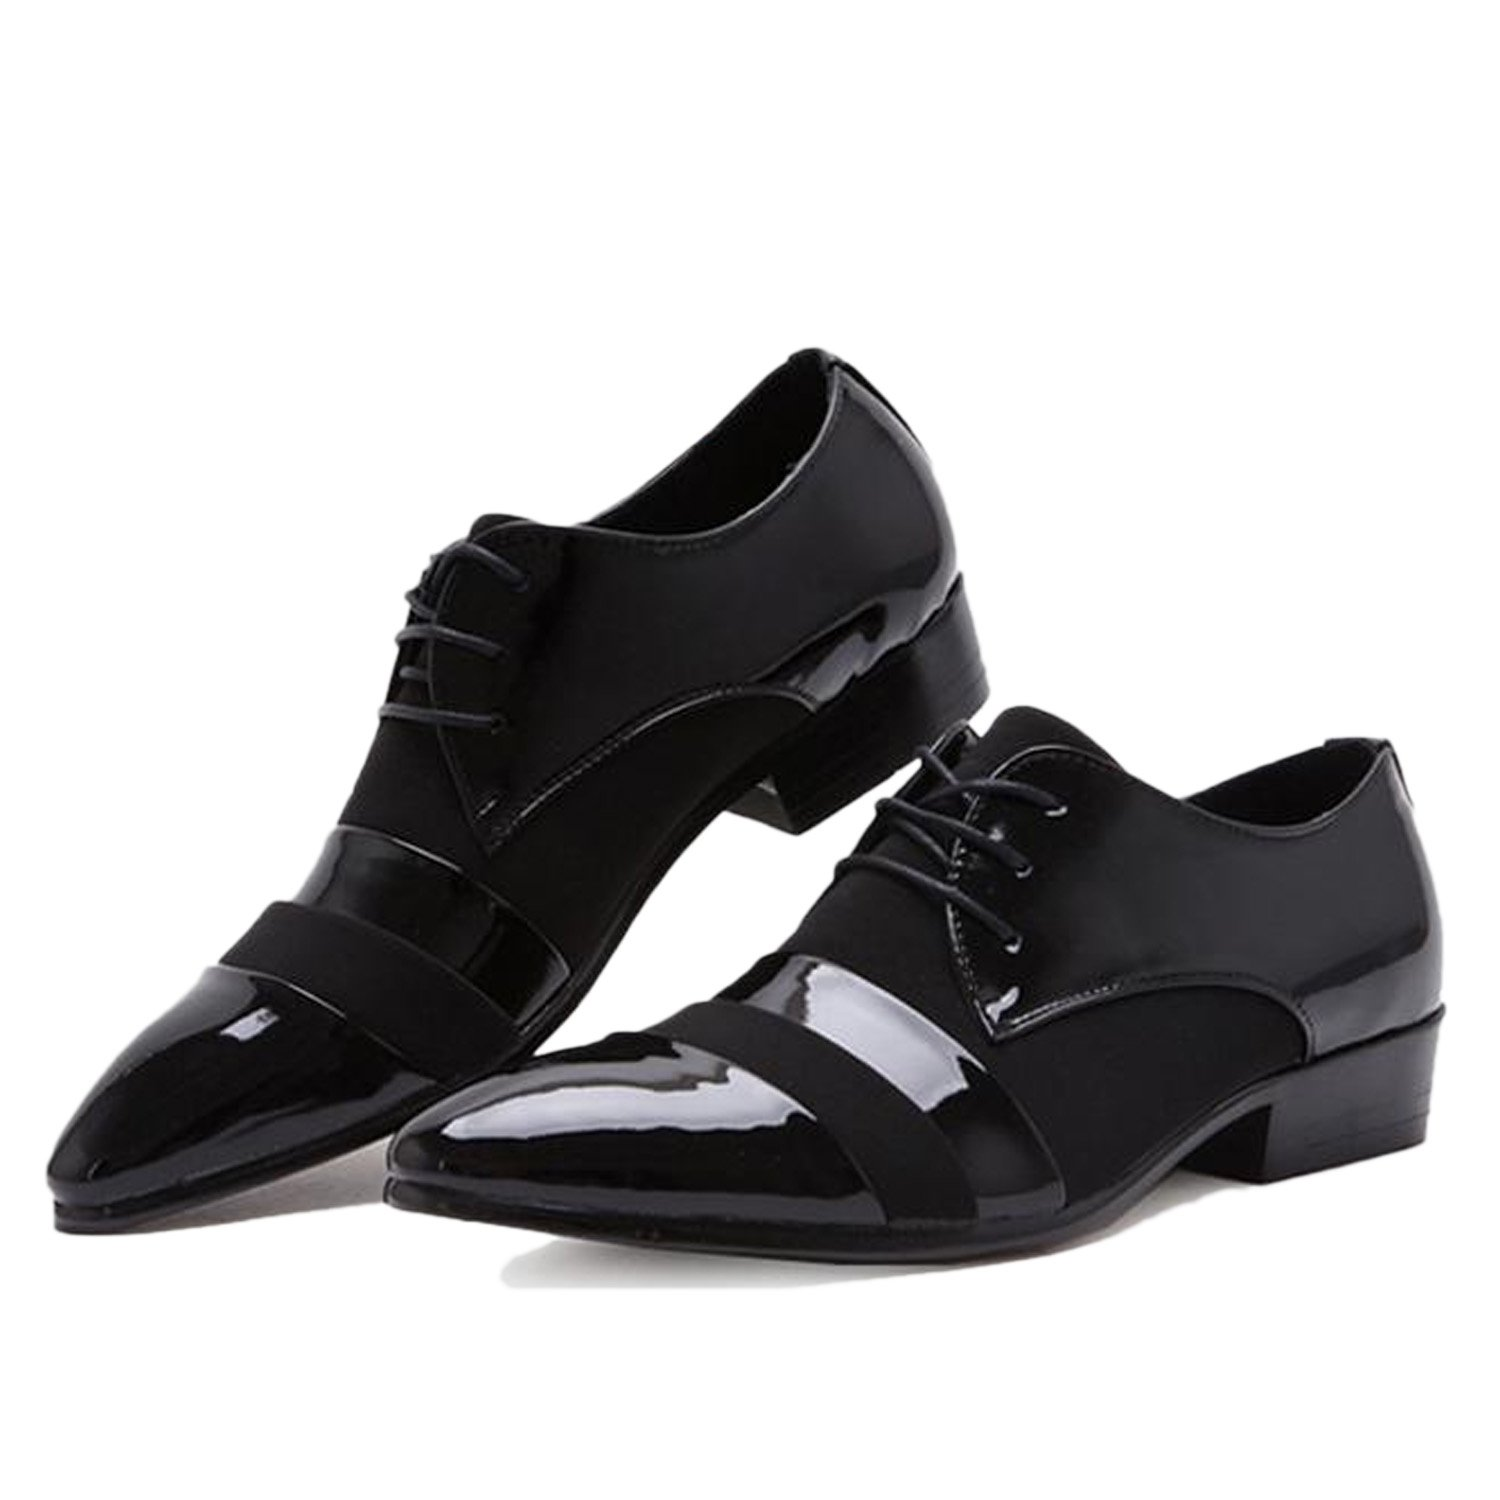 Nonbrand Men's New office Black Leather Smart Formal cuban heel Shoes:  Amazon.co.uk: Shoes & Bags